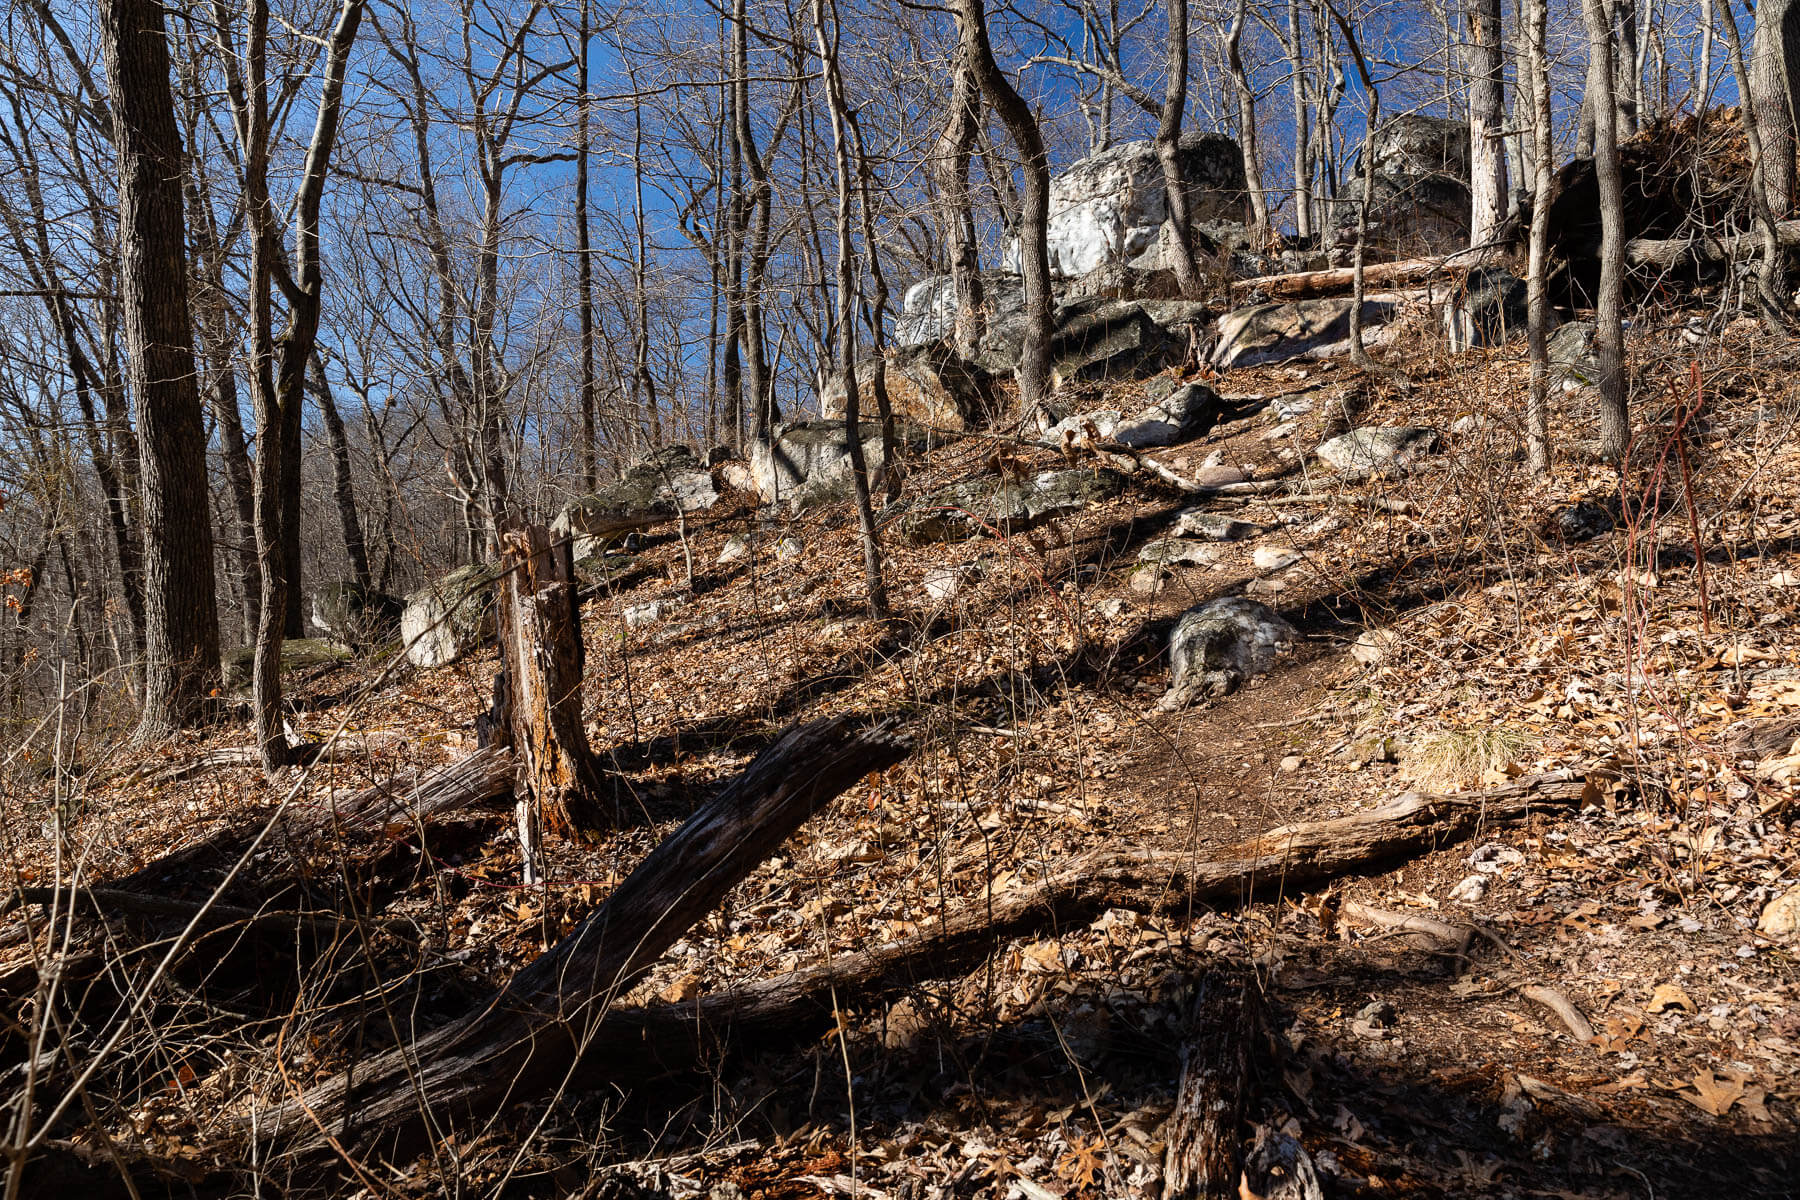 Woods and a rocky hillside